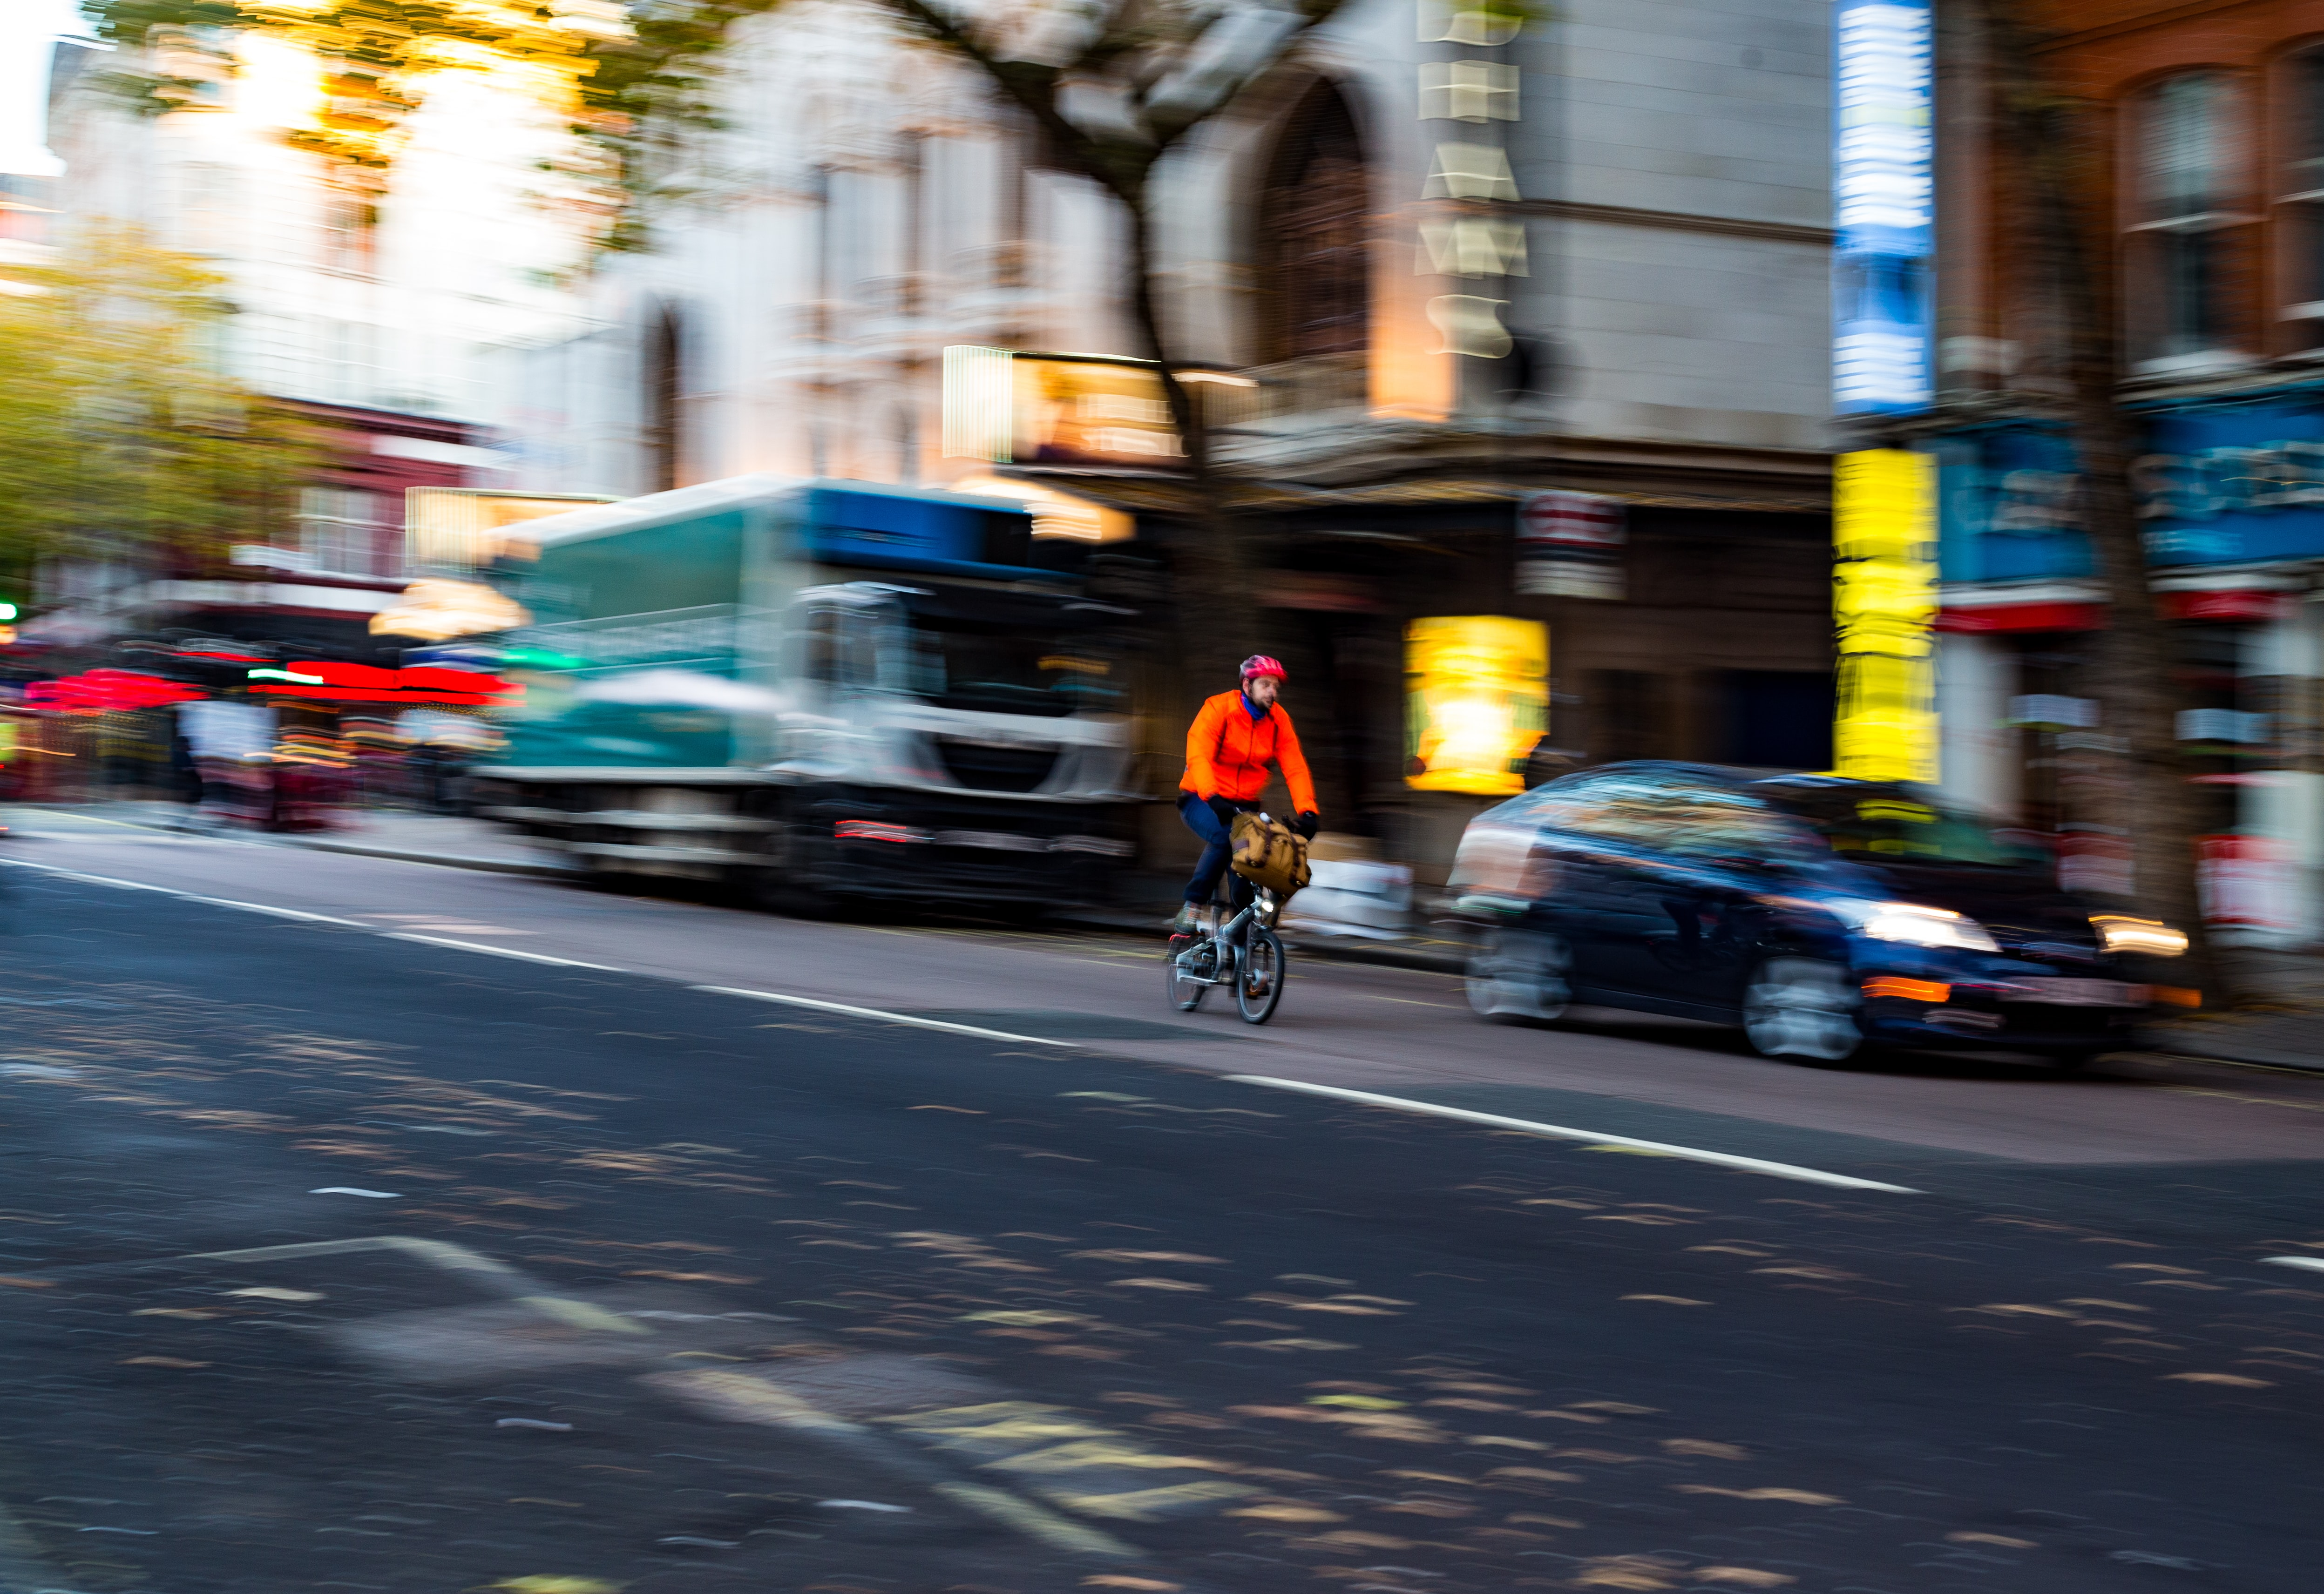 panning photography of man riding bike on road